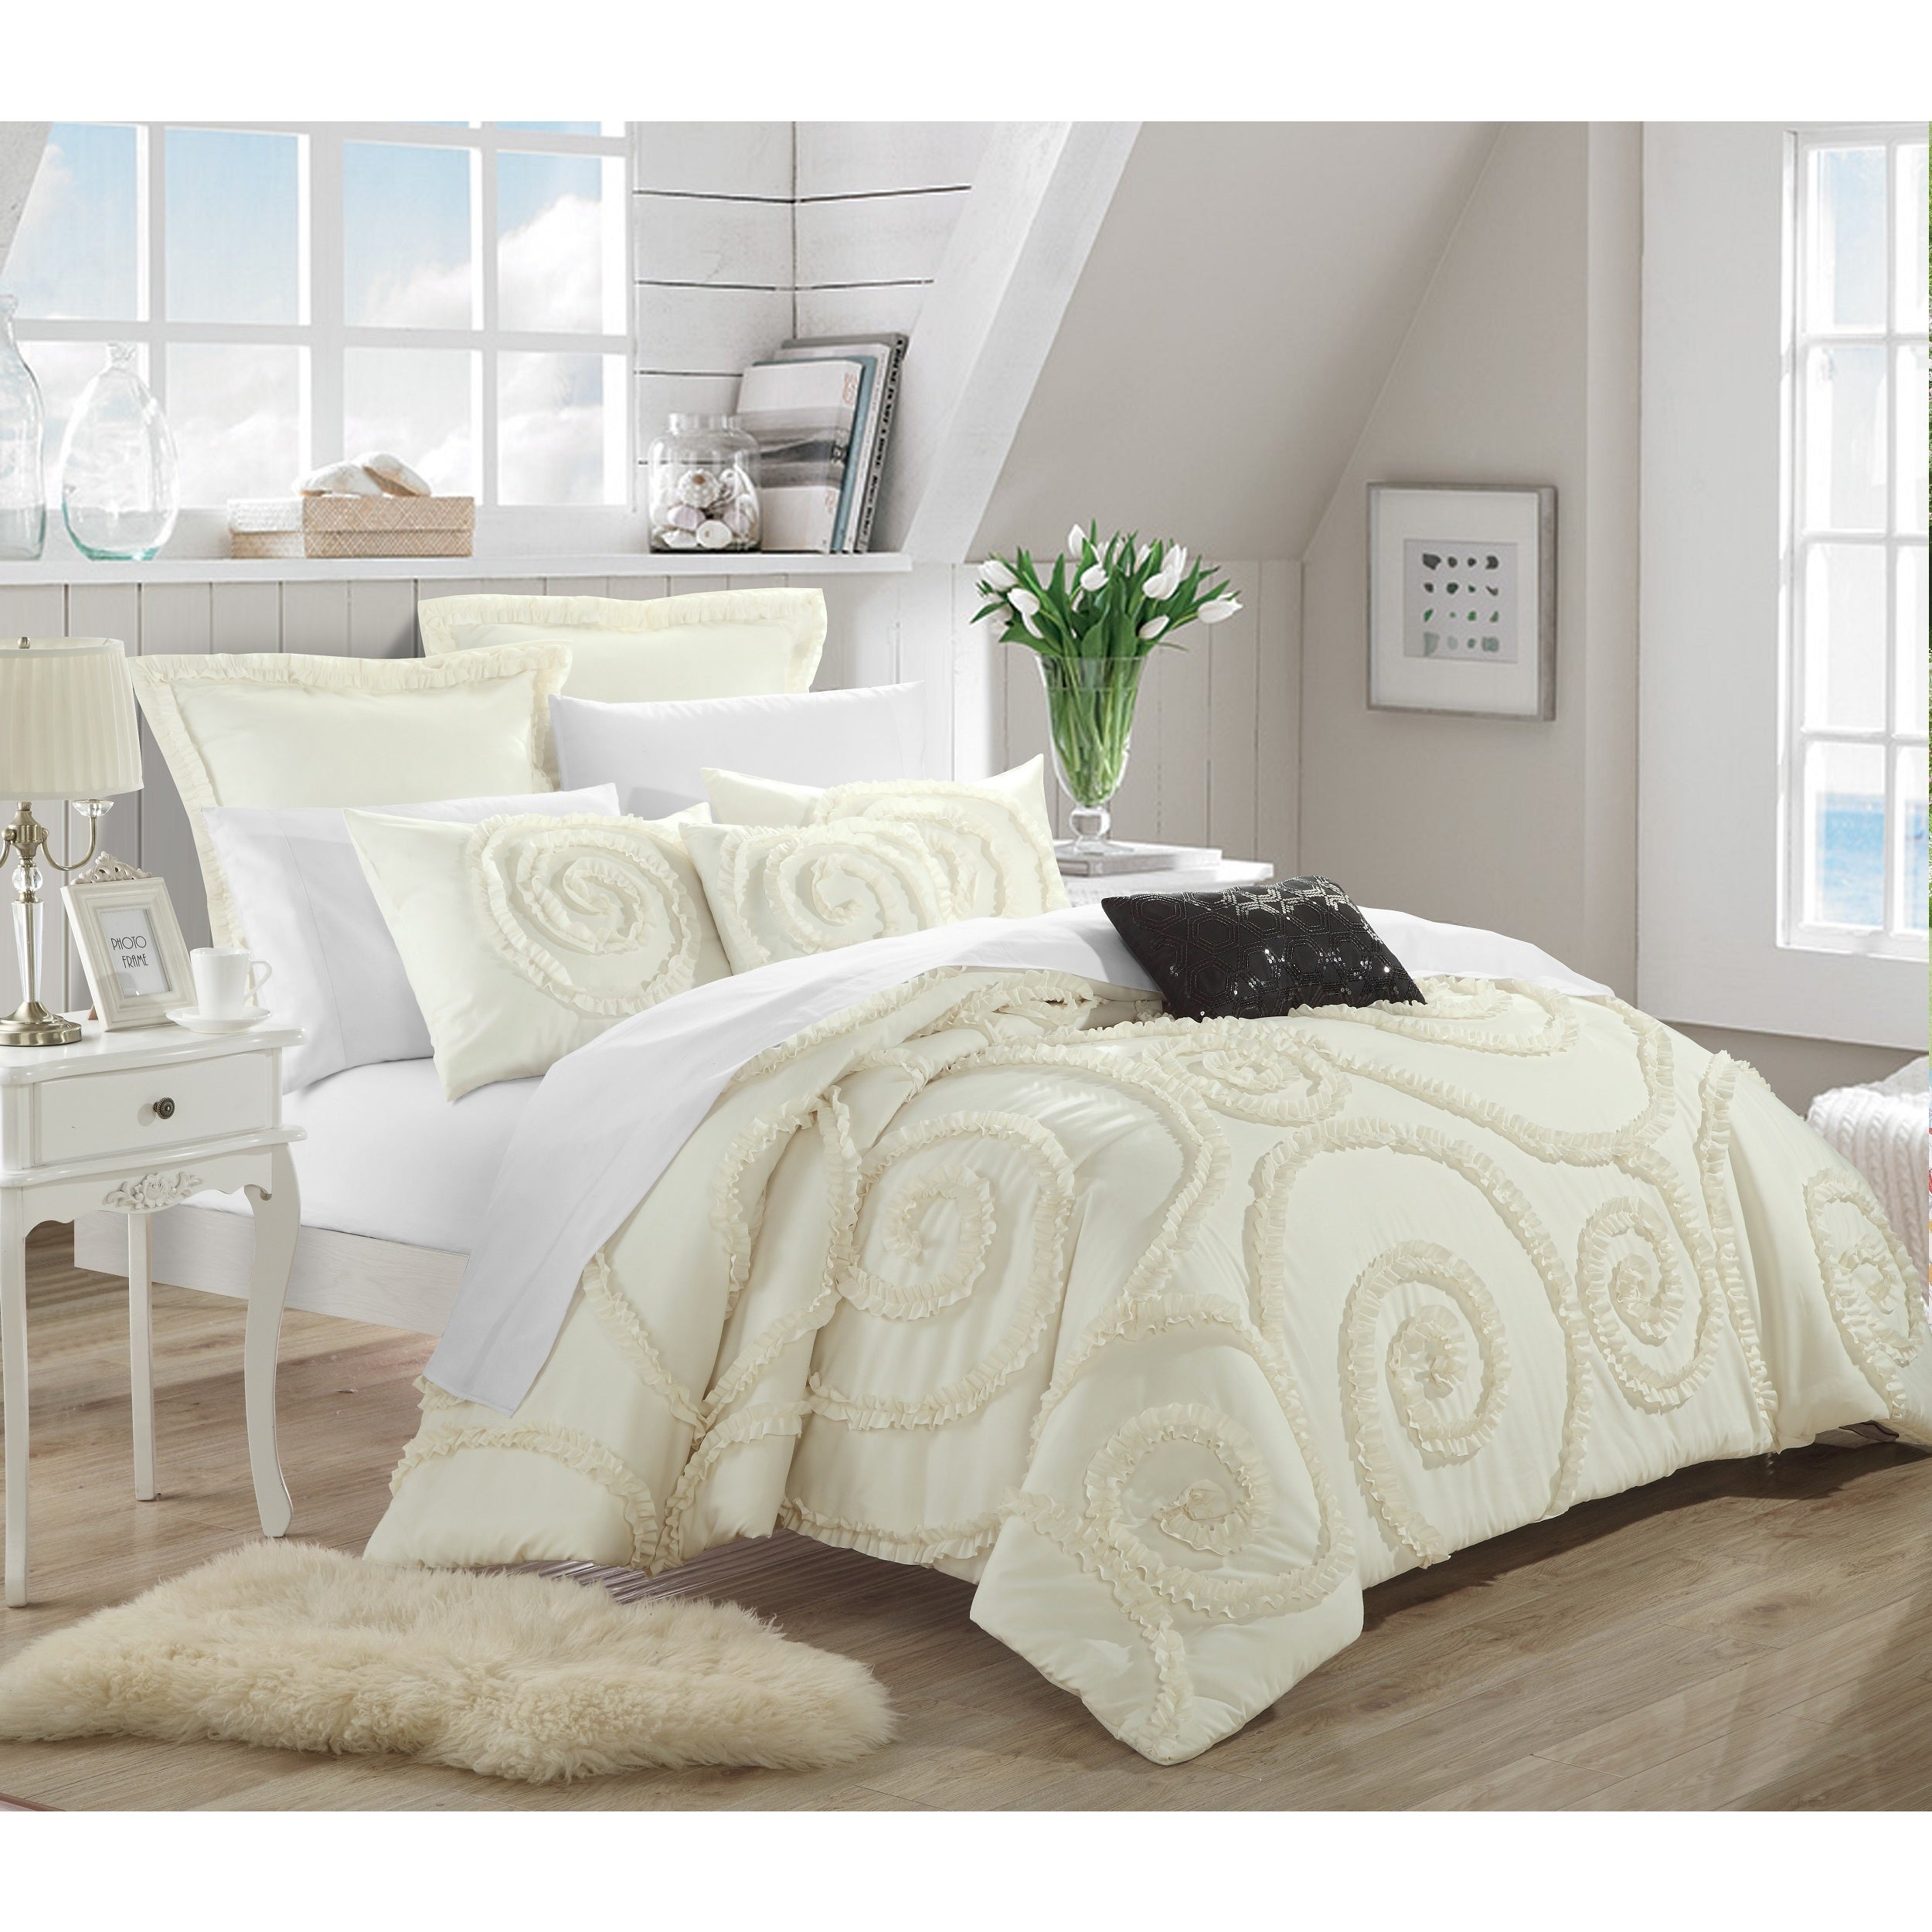 stunning twin aqua queen to pink white marilyn colored charcoal set enthralling comforter yellow sets comforters boys king target piece for gray cream teens turquoise and lacoste pottery picture barn bedding com size teen tween full monroe bedroom grey mens blanca